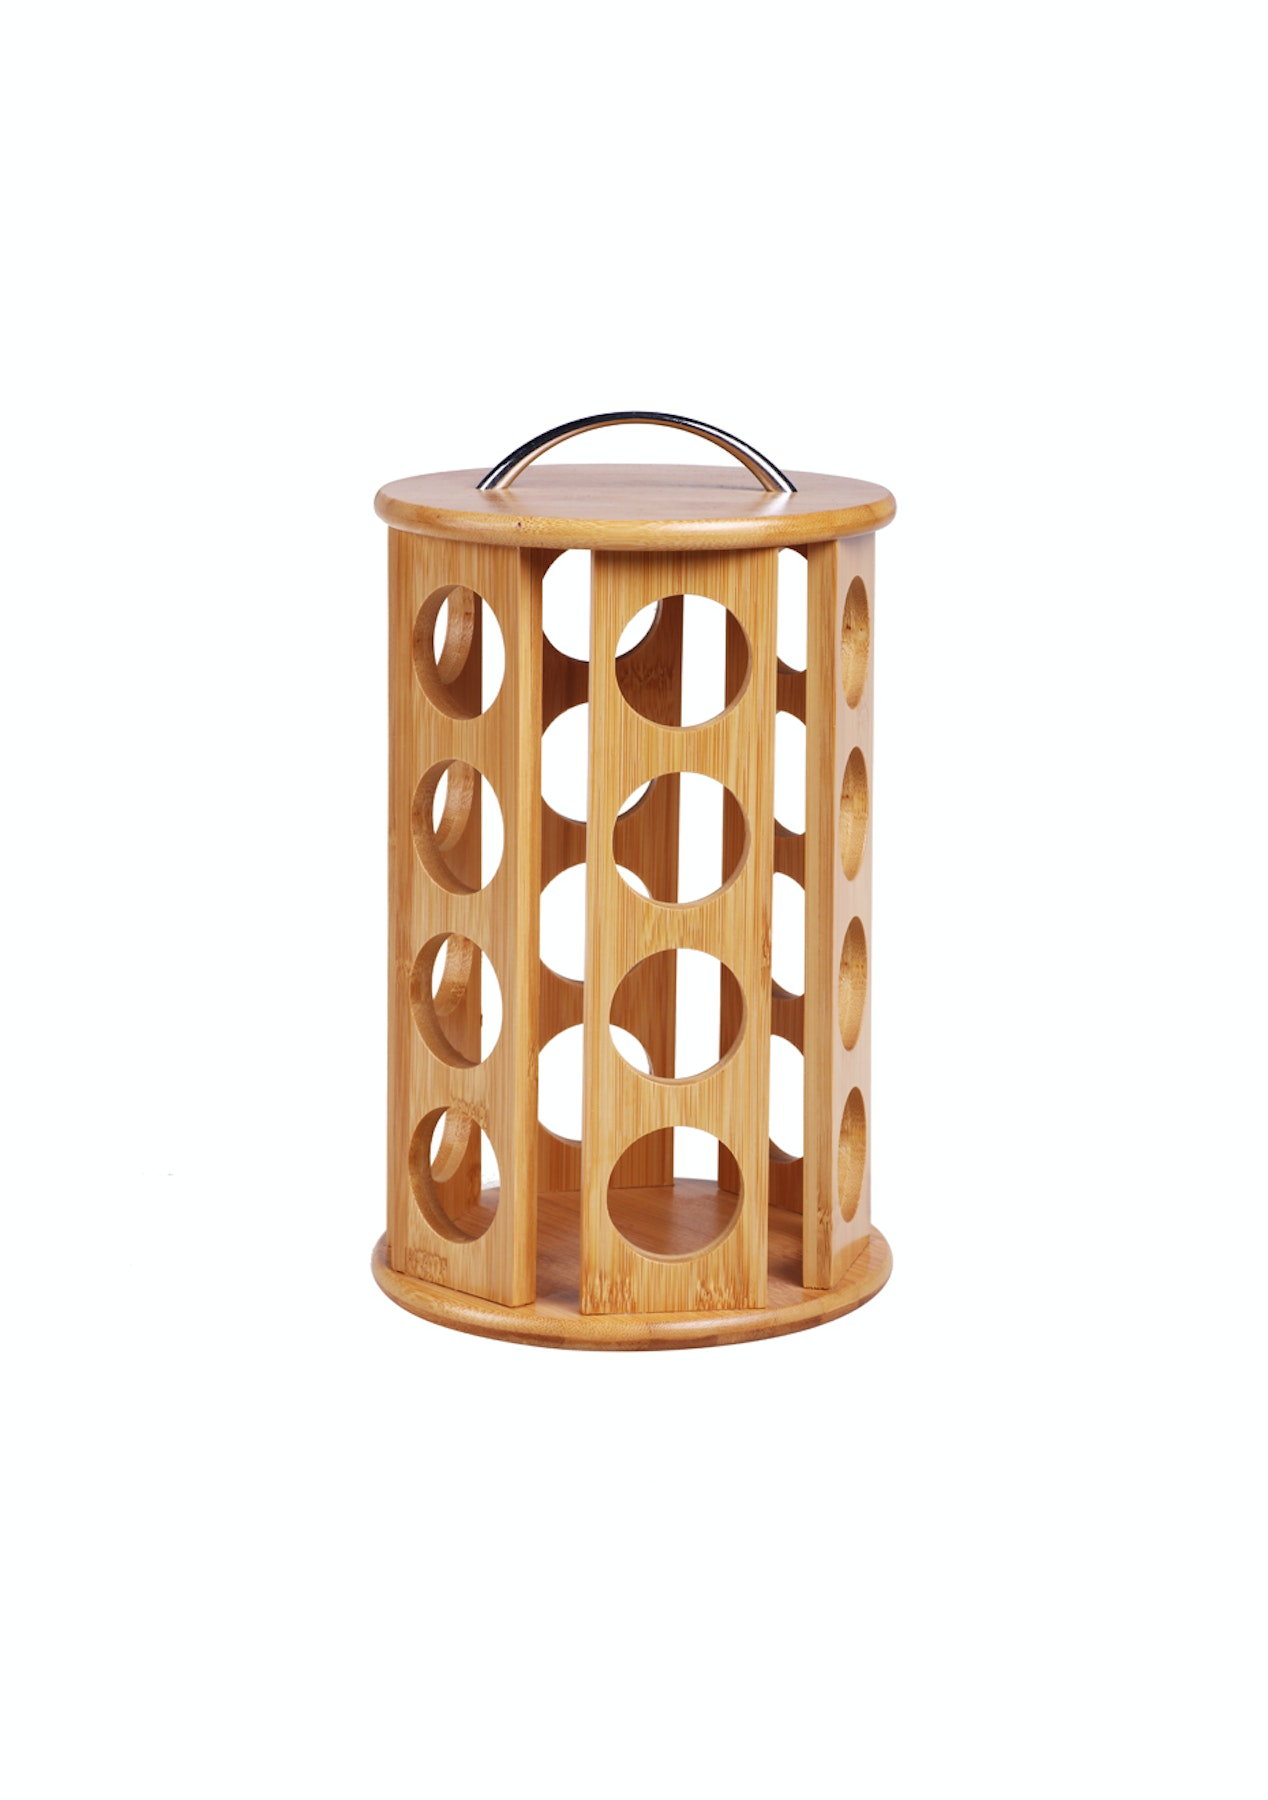 Fantastic Sherwood Bamboo Coffee Pod Carousel 24 Pod Capacity Designed For K Cups Download Free Architecture Designs Scobabritishbridgeorg